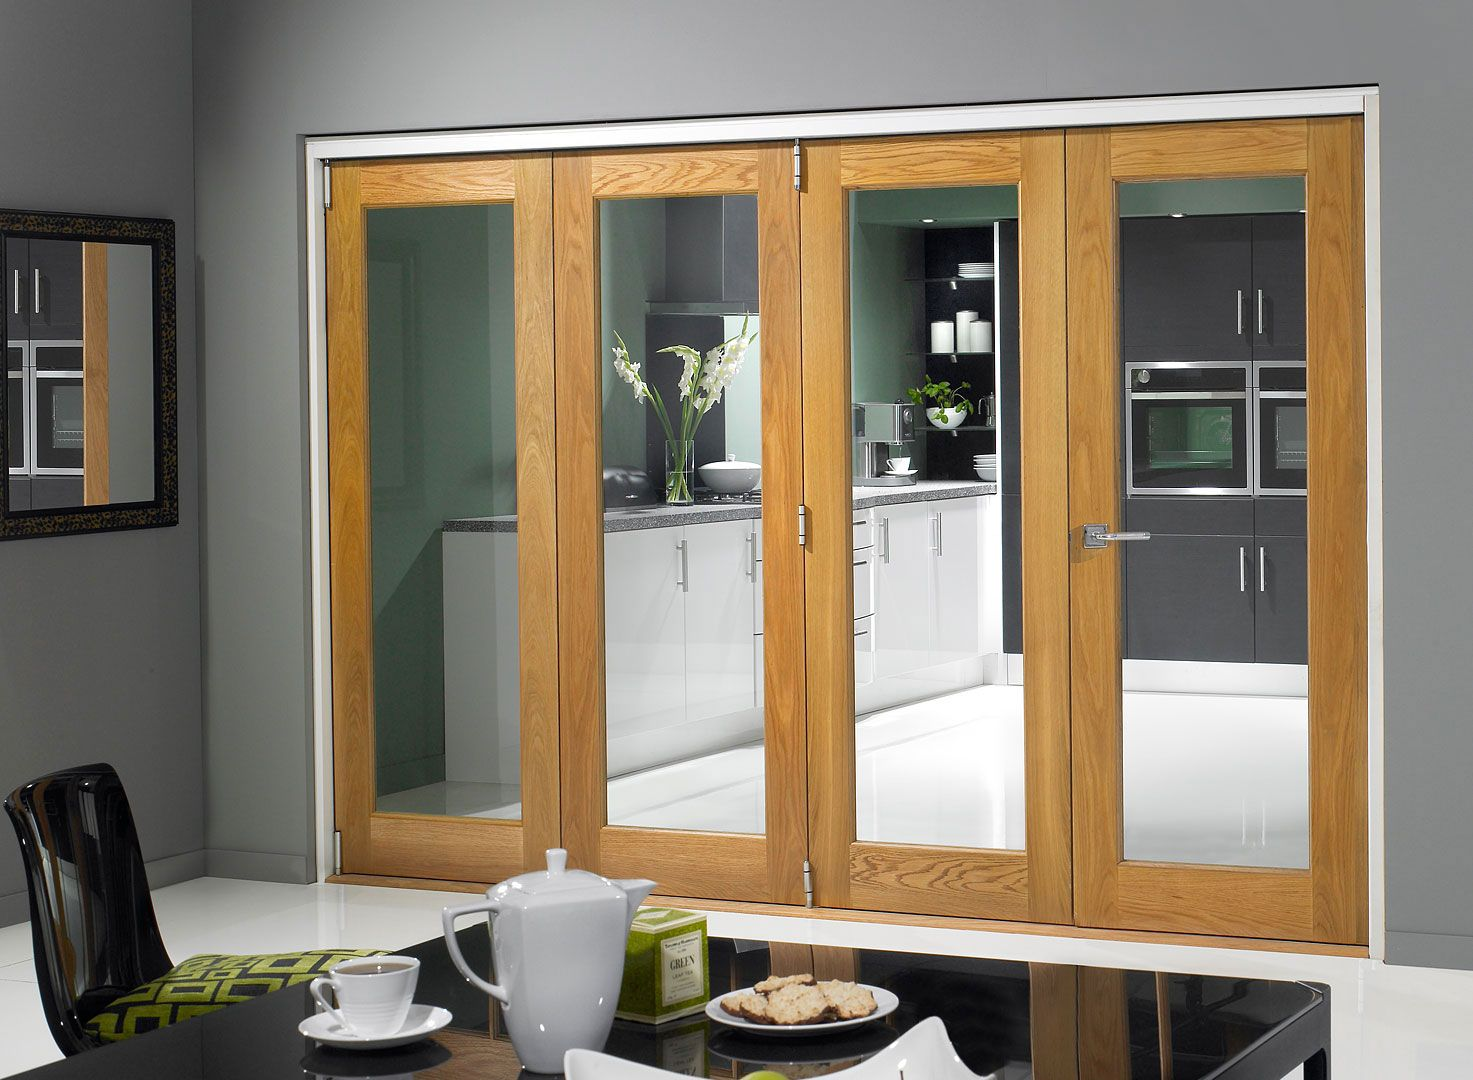 Bi fold doors for bathroom - Internal Bifold Doors Interior Folding Room Dividers Vufold